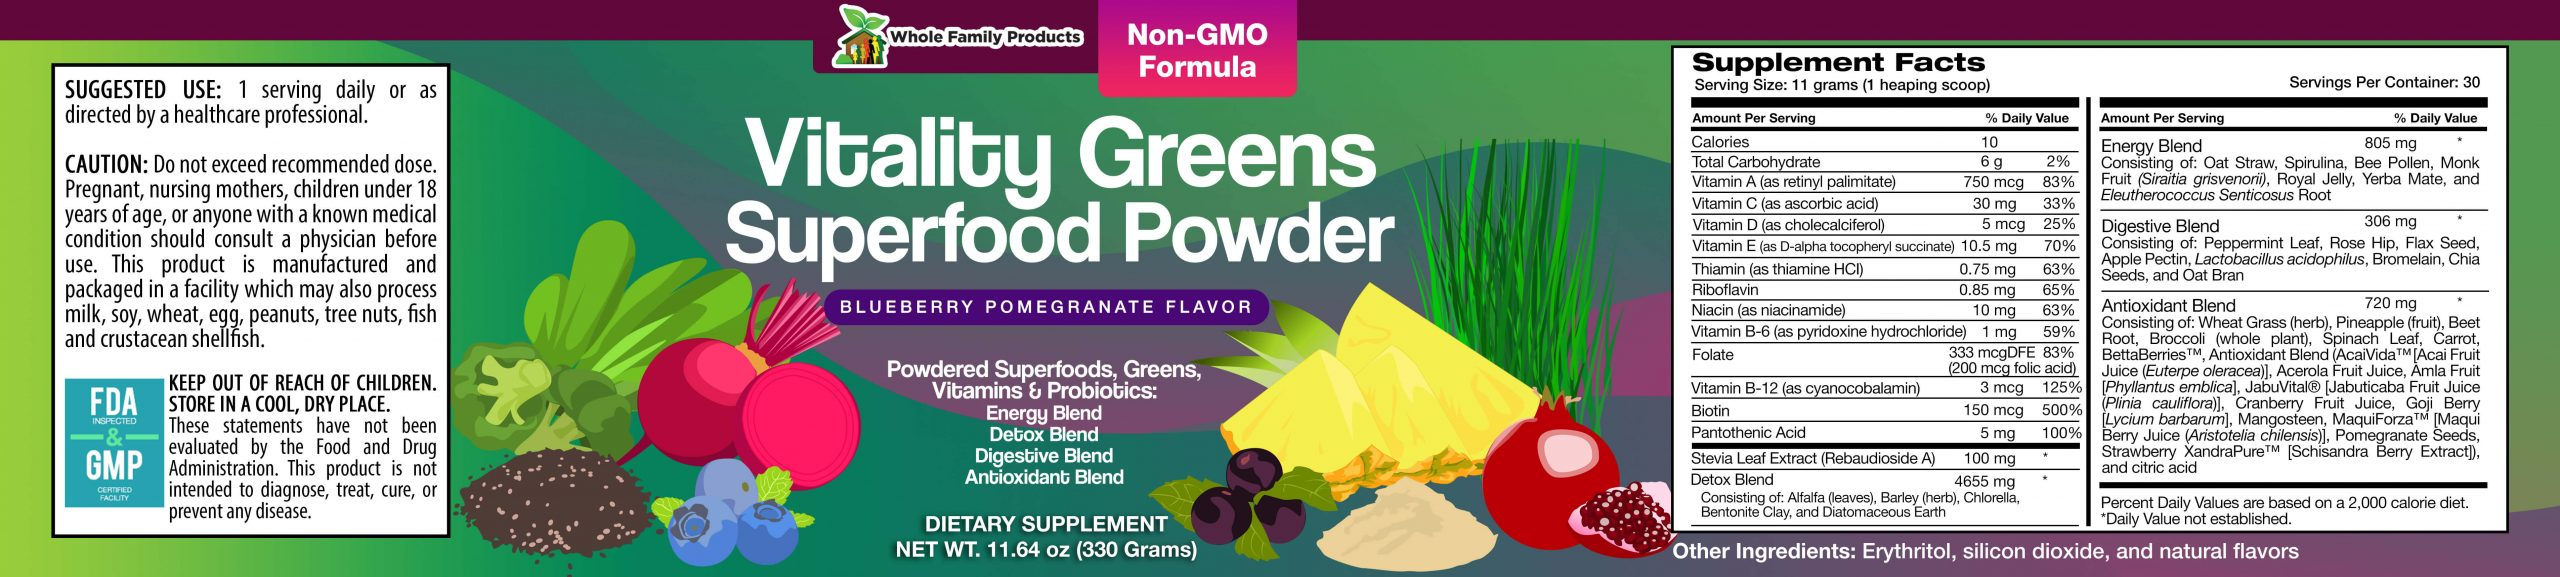 Vitality Greens Superfood Powder WFP Product Label